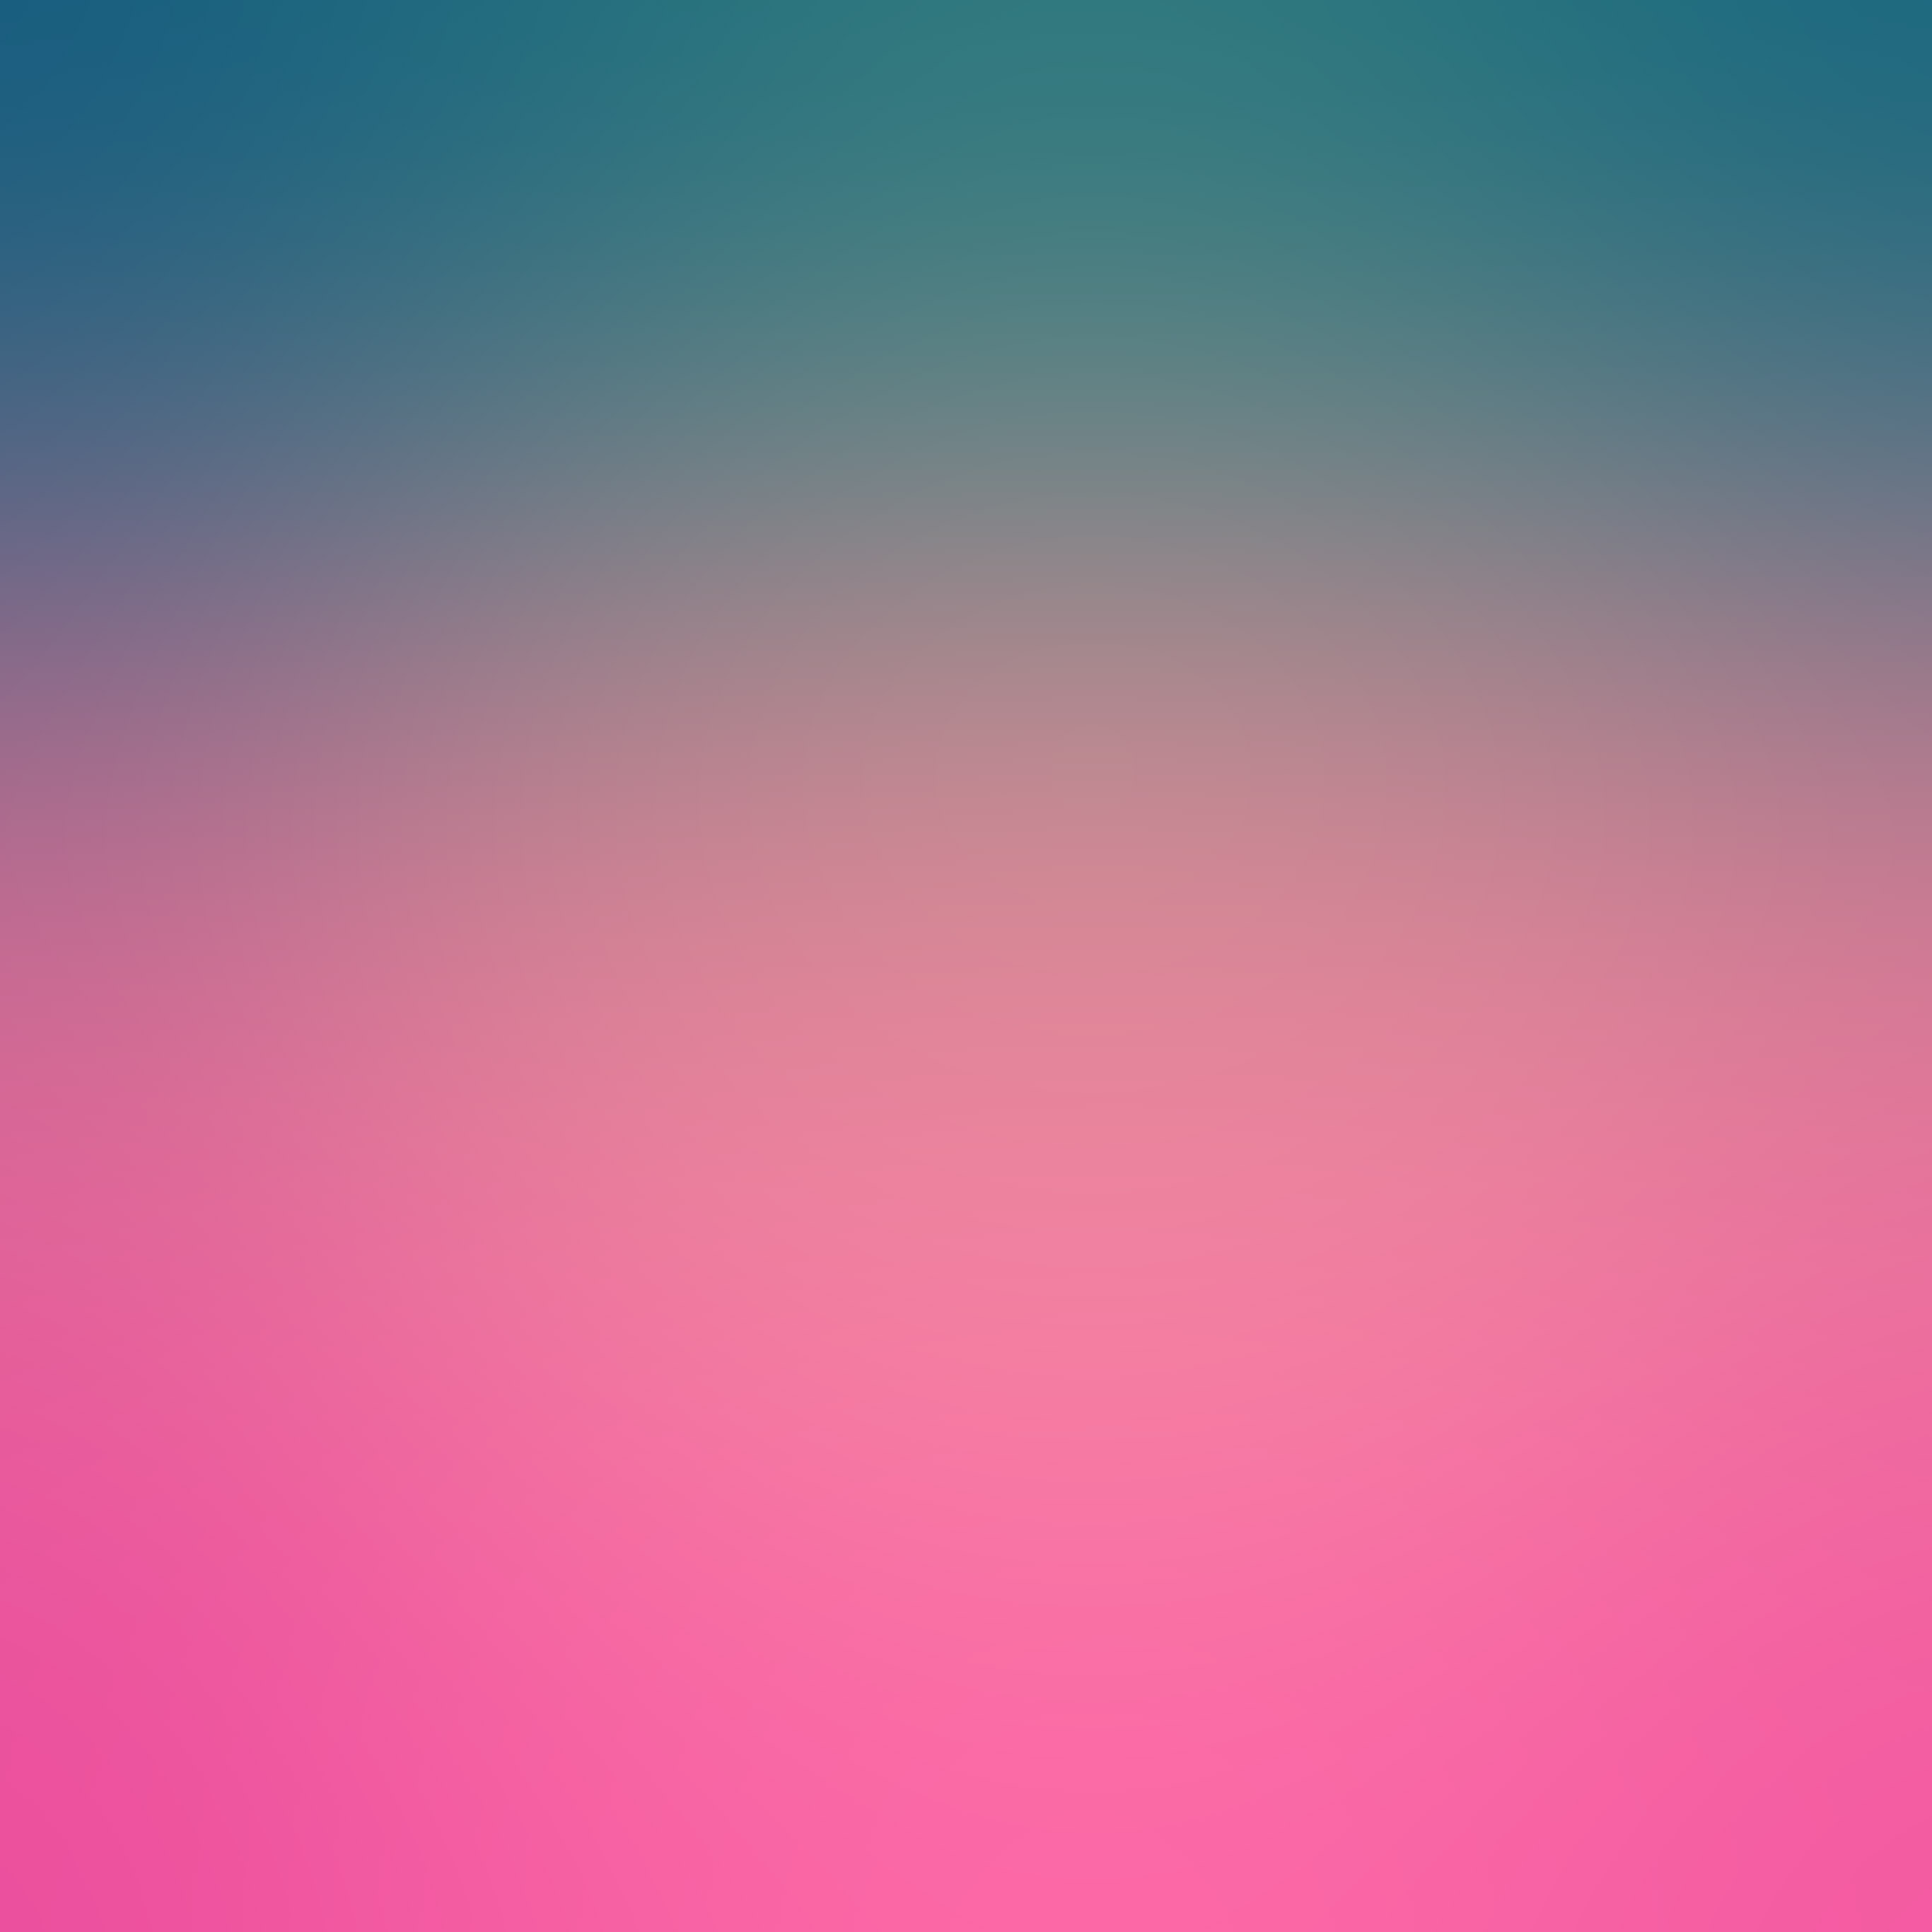 Source Papersco Report Hipster Ombre Iphone Wallpaper